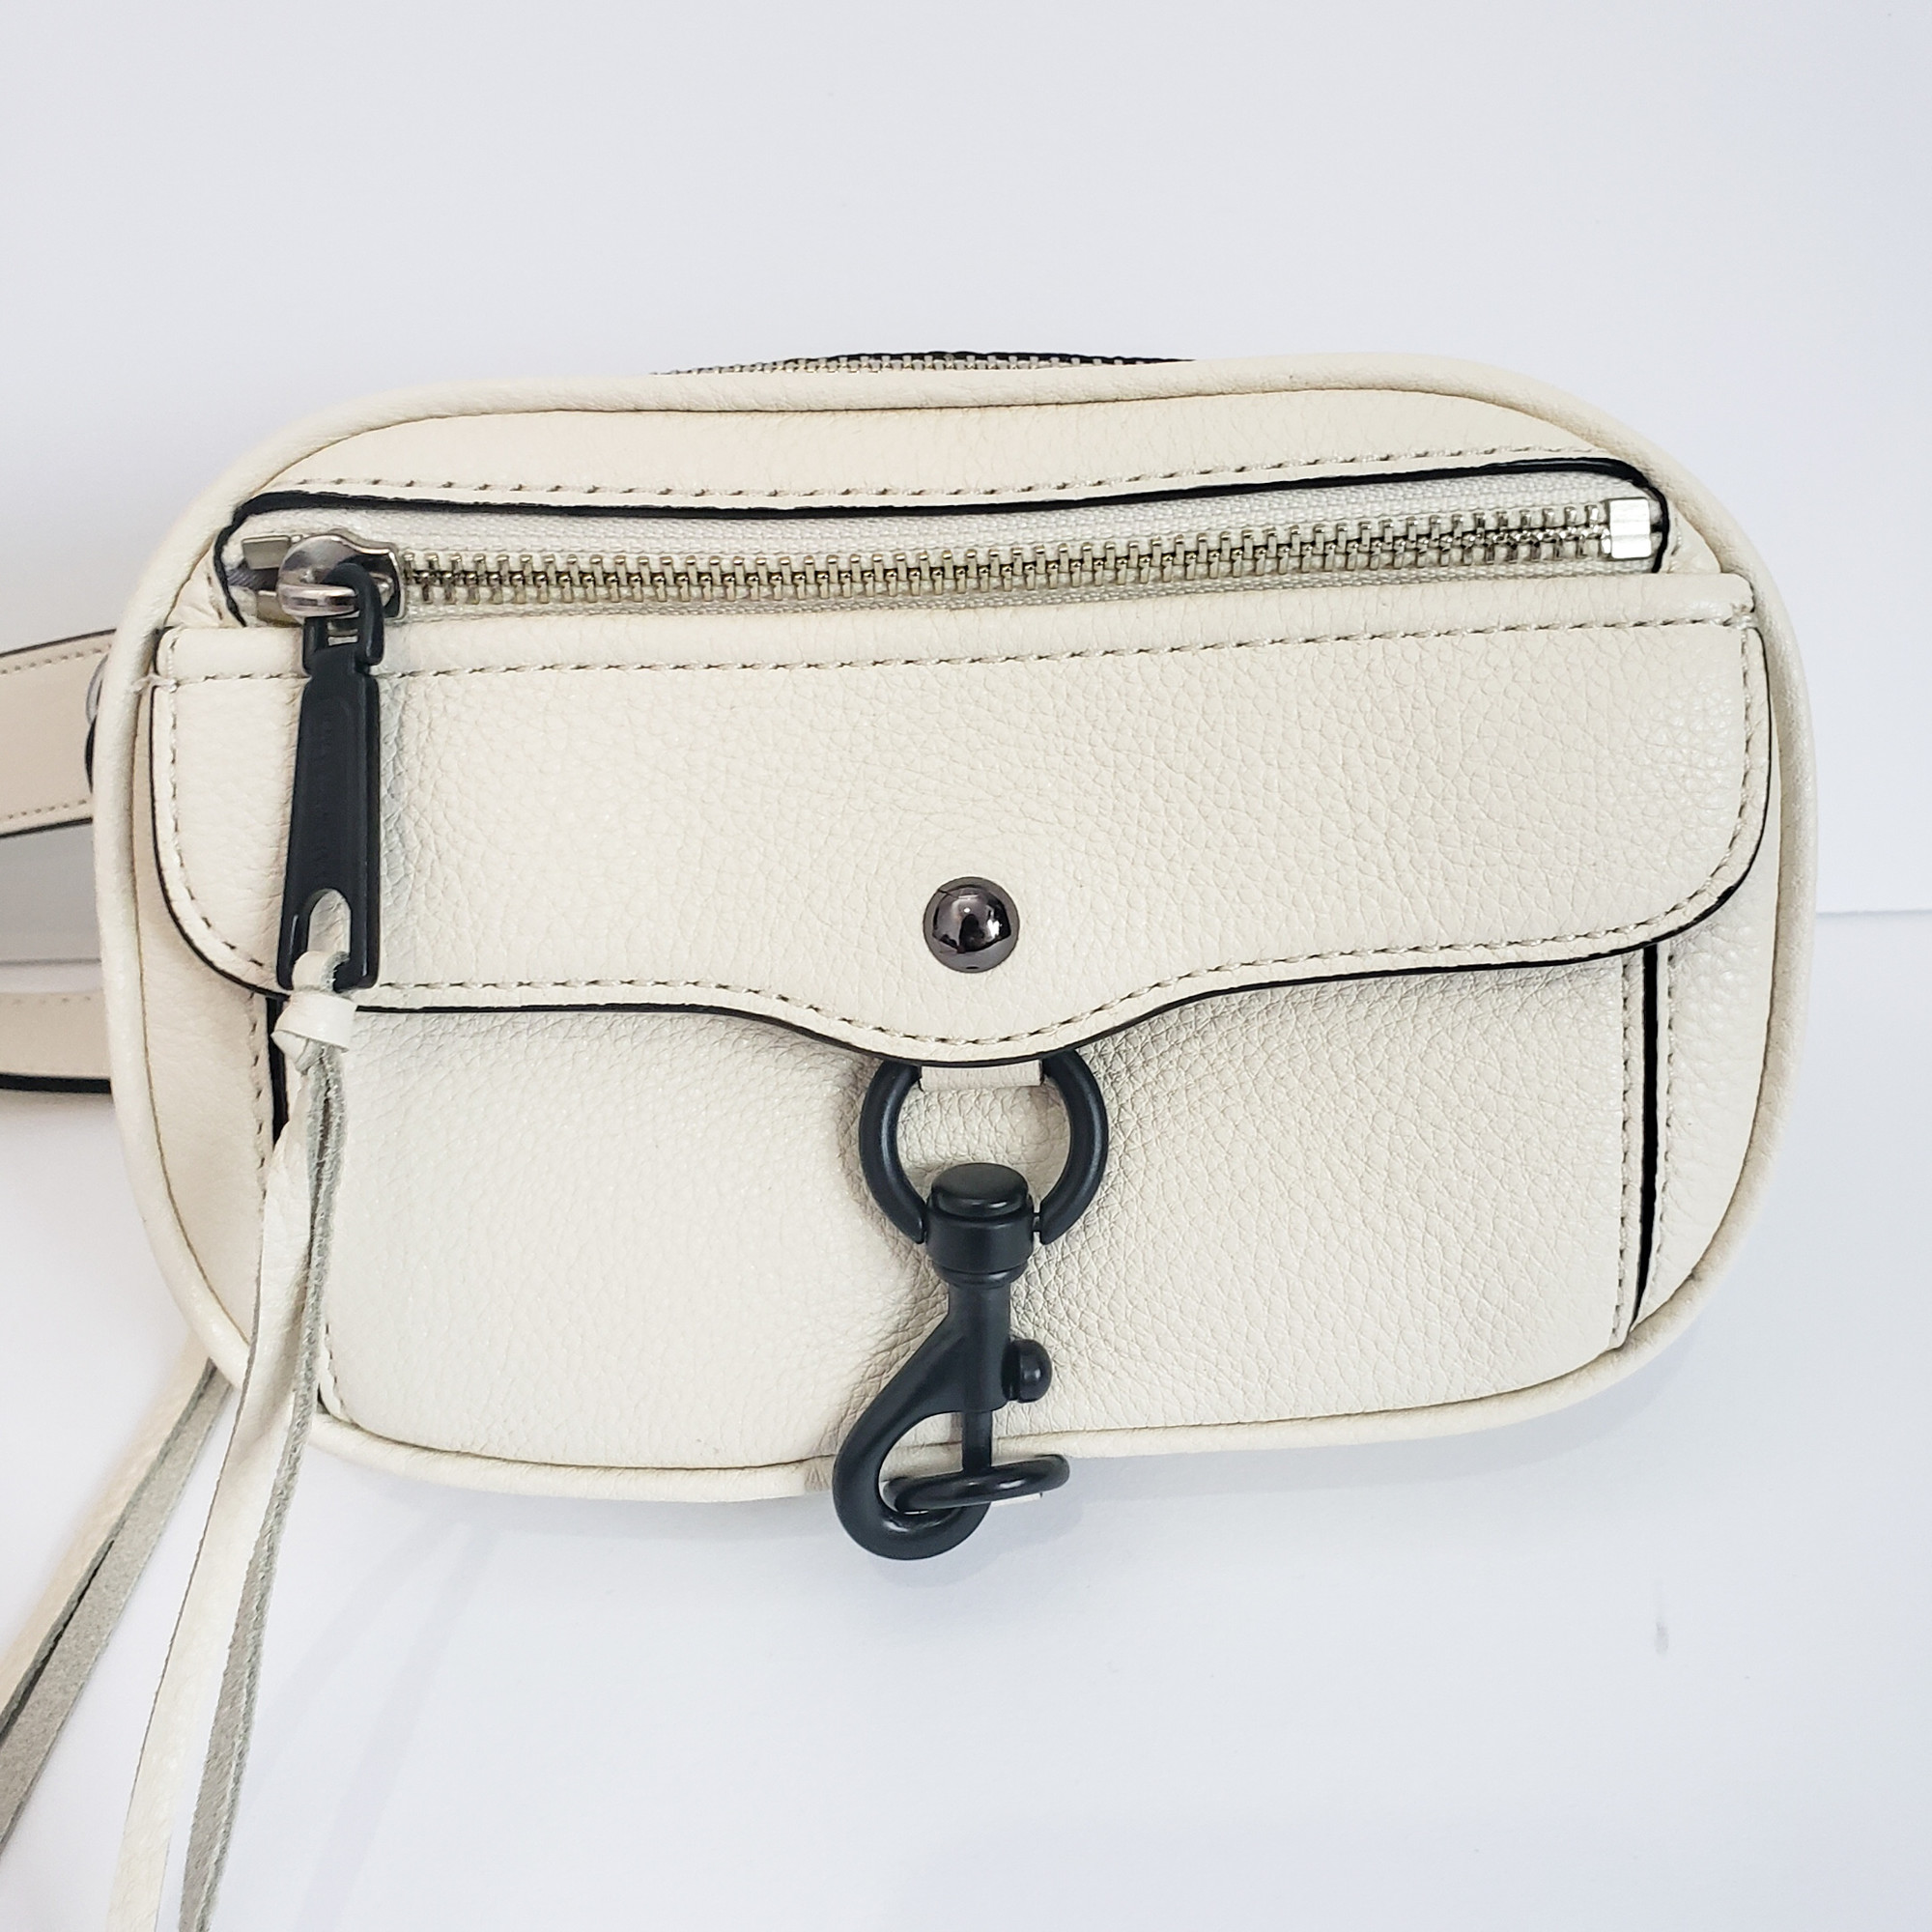 Rebecca Minkoff<br /> Fanny pack with Zippers<br /> NEW!